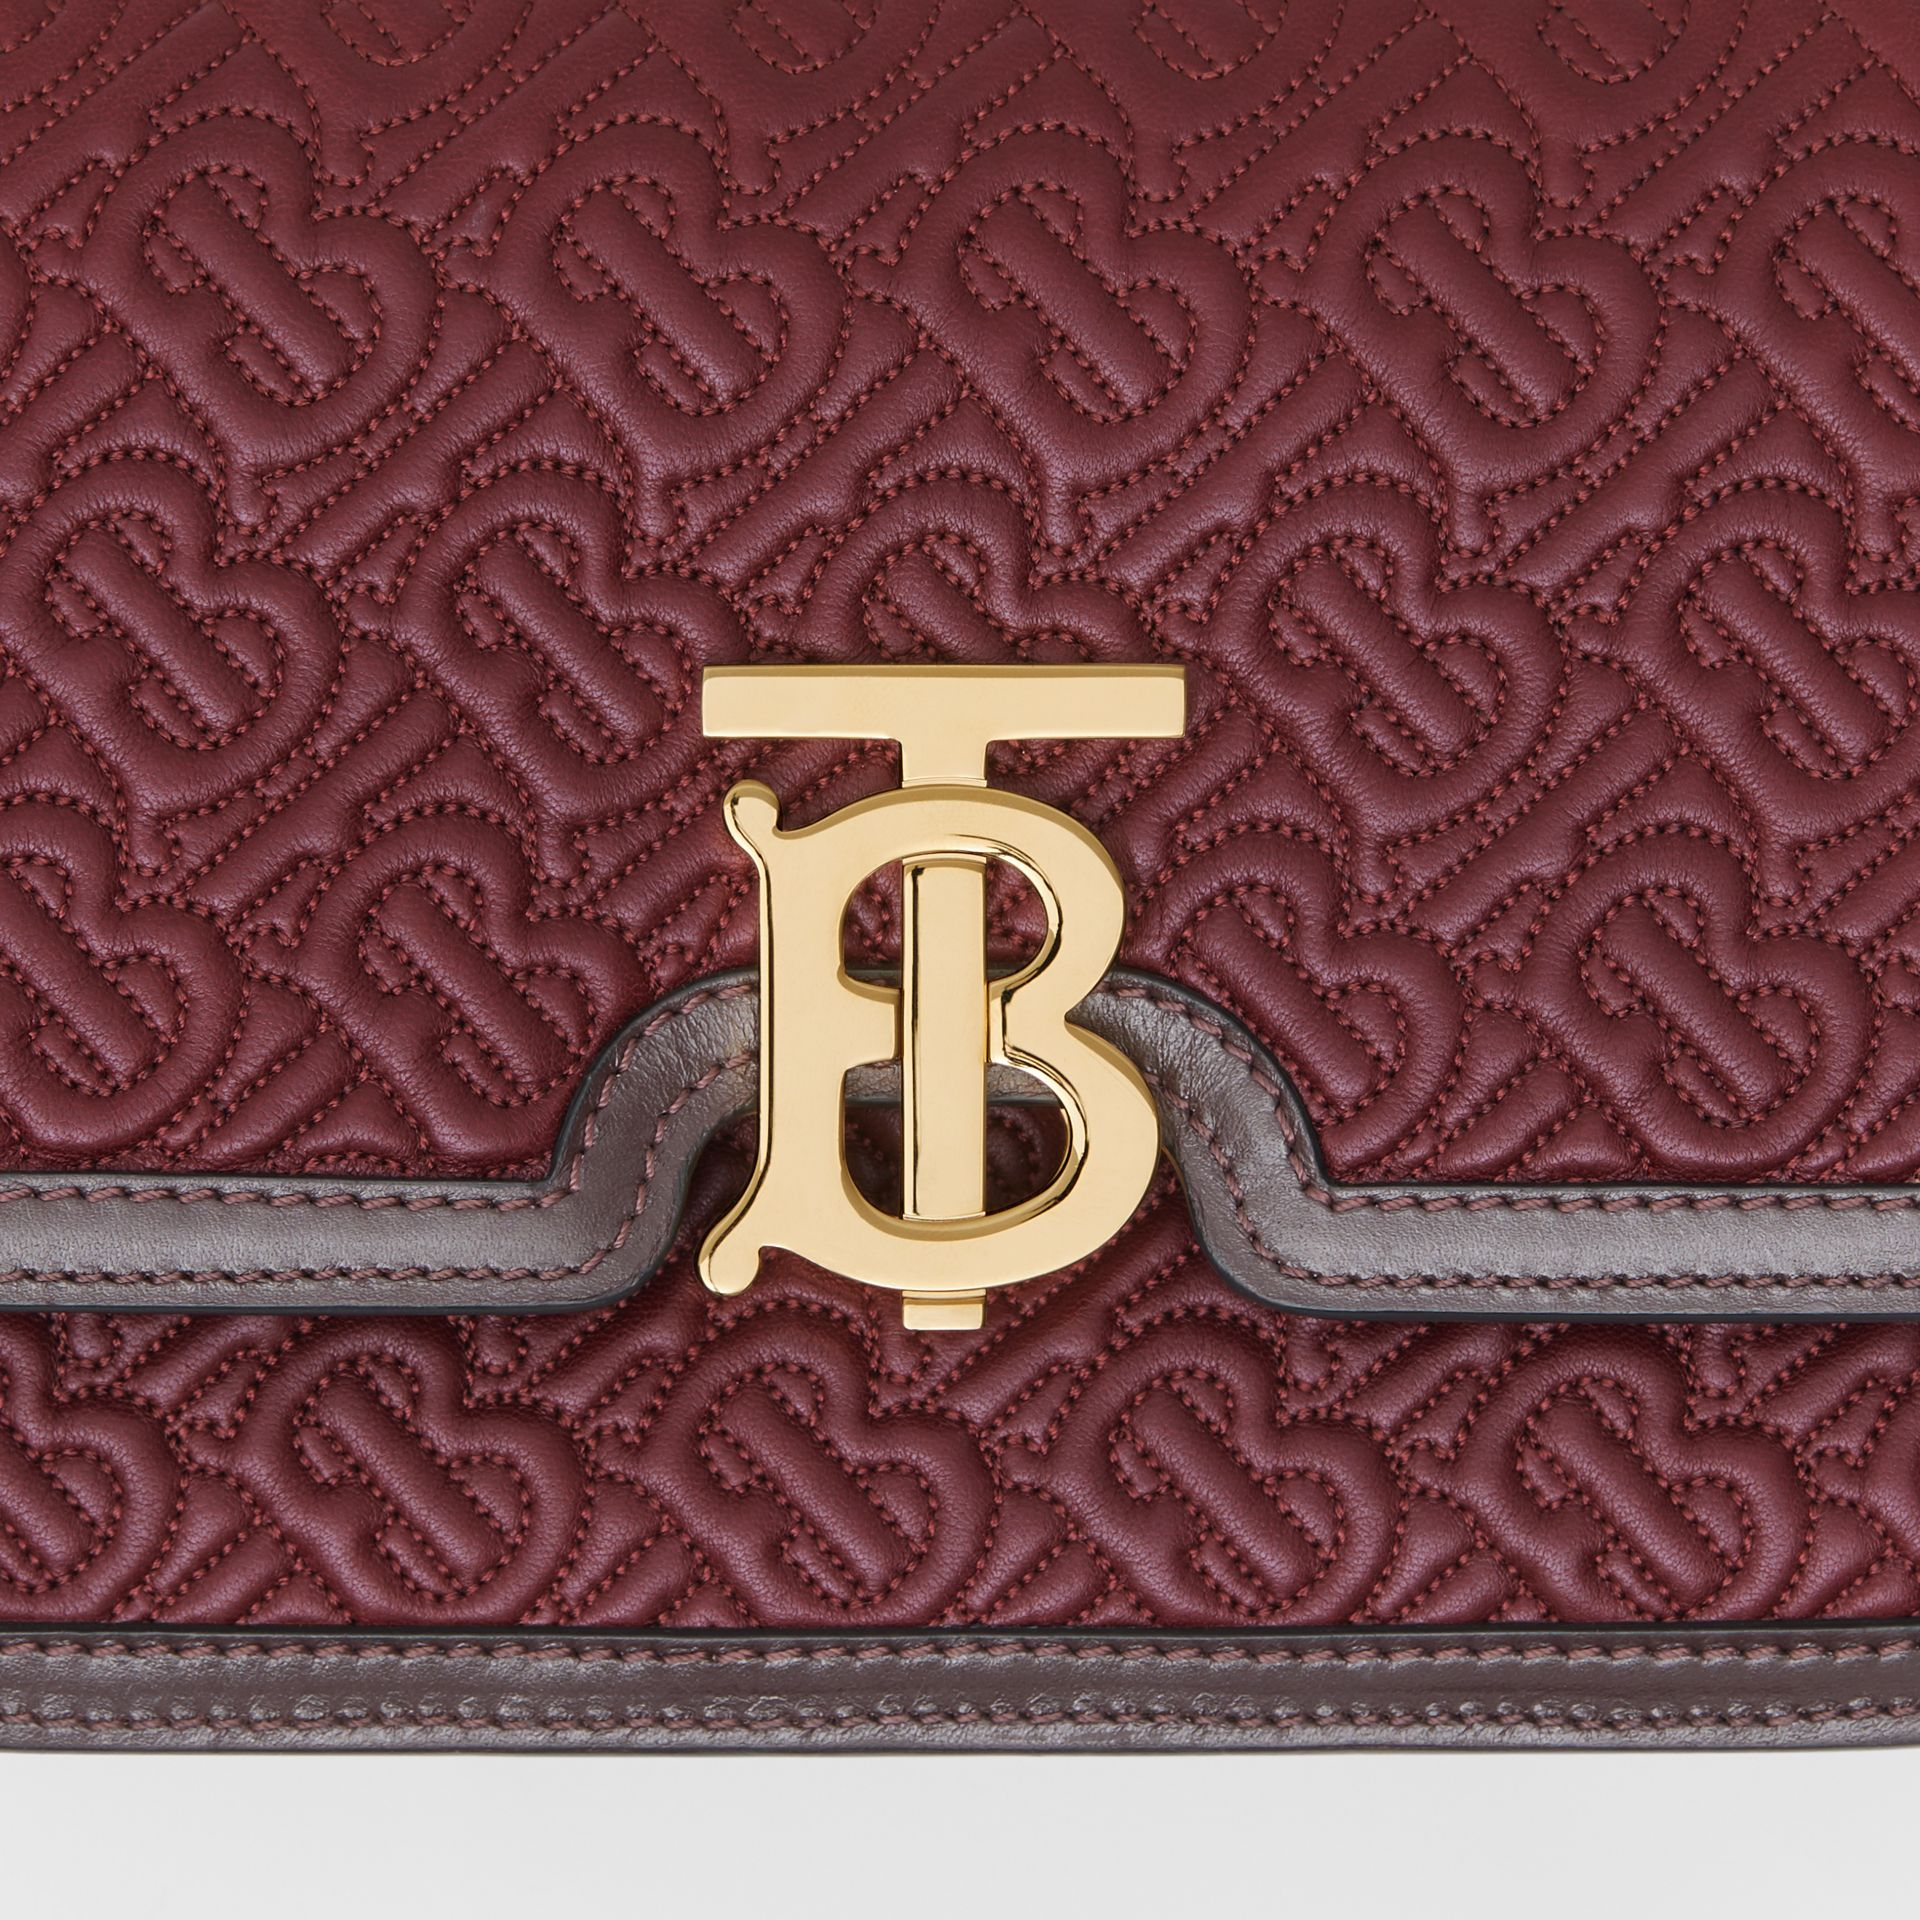 Small Quilted Monogram Lambskin TB Bag in Oxblood - Women | Burberry - gallery image 1